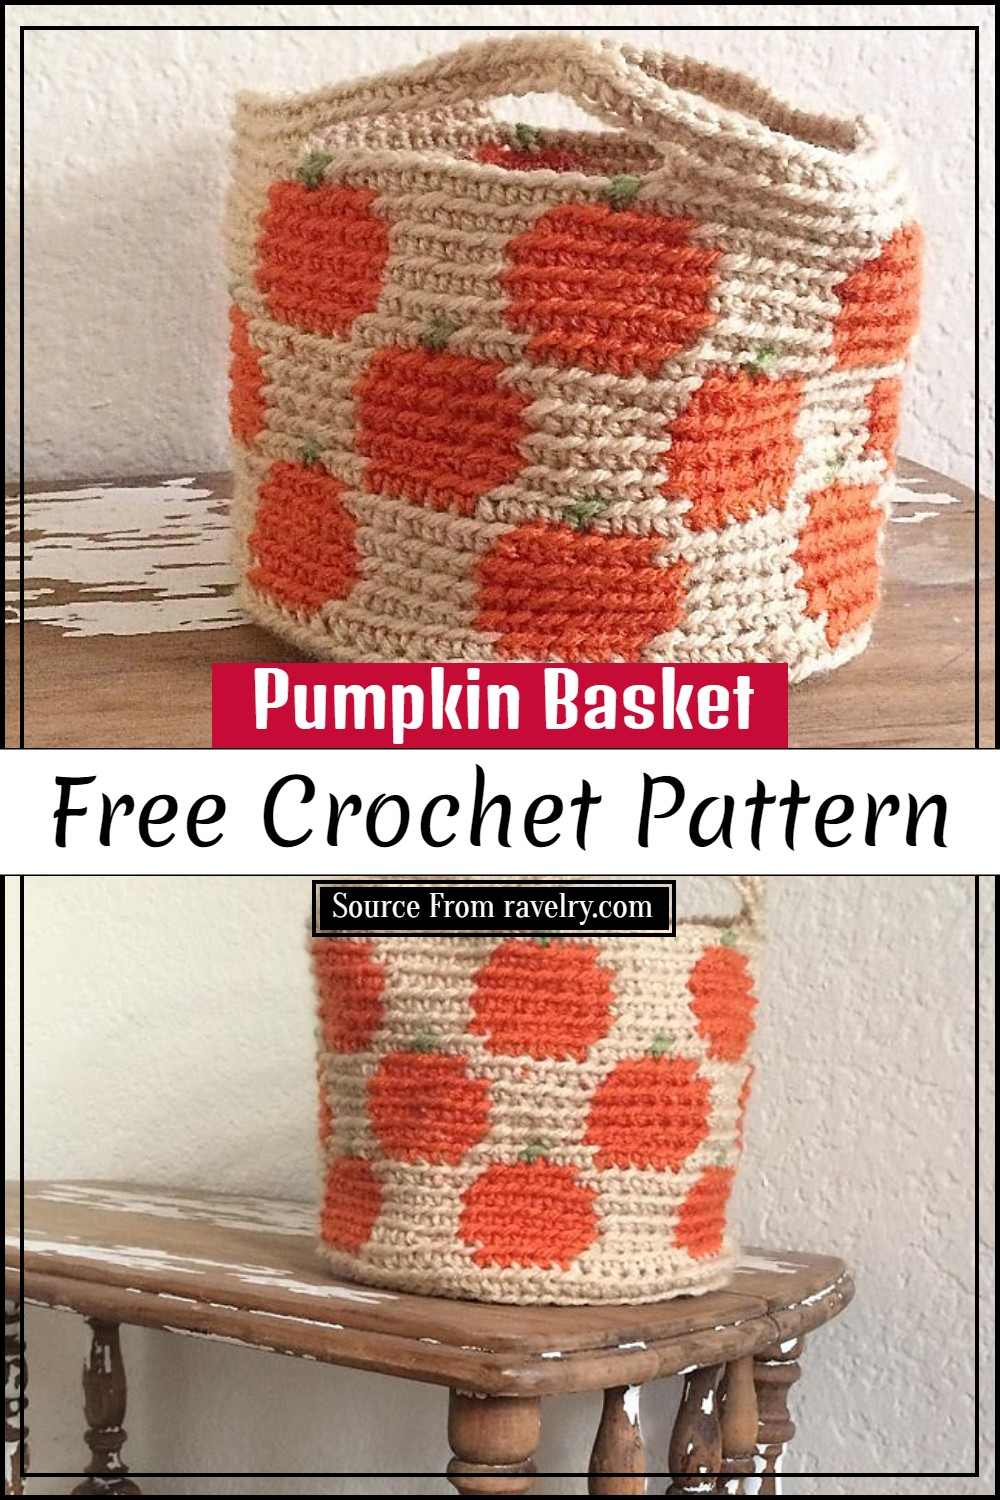 Crochet Pumpkin Basket Pattern